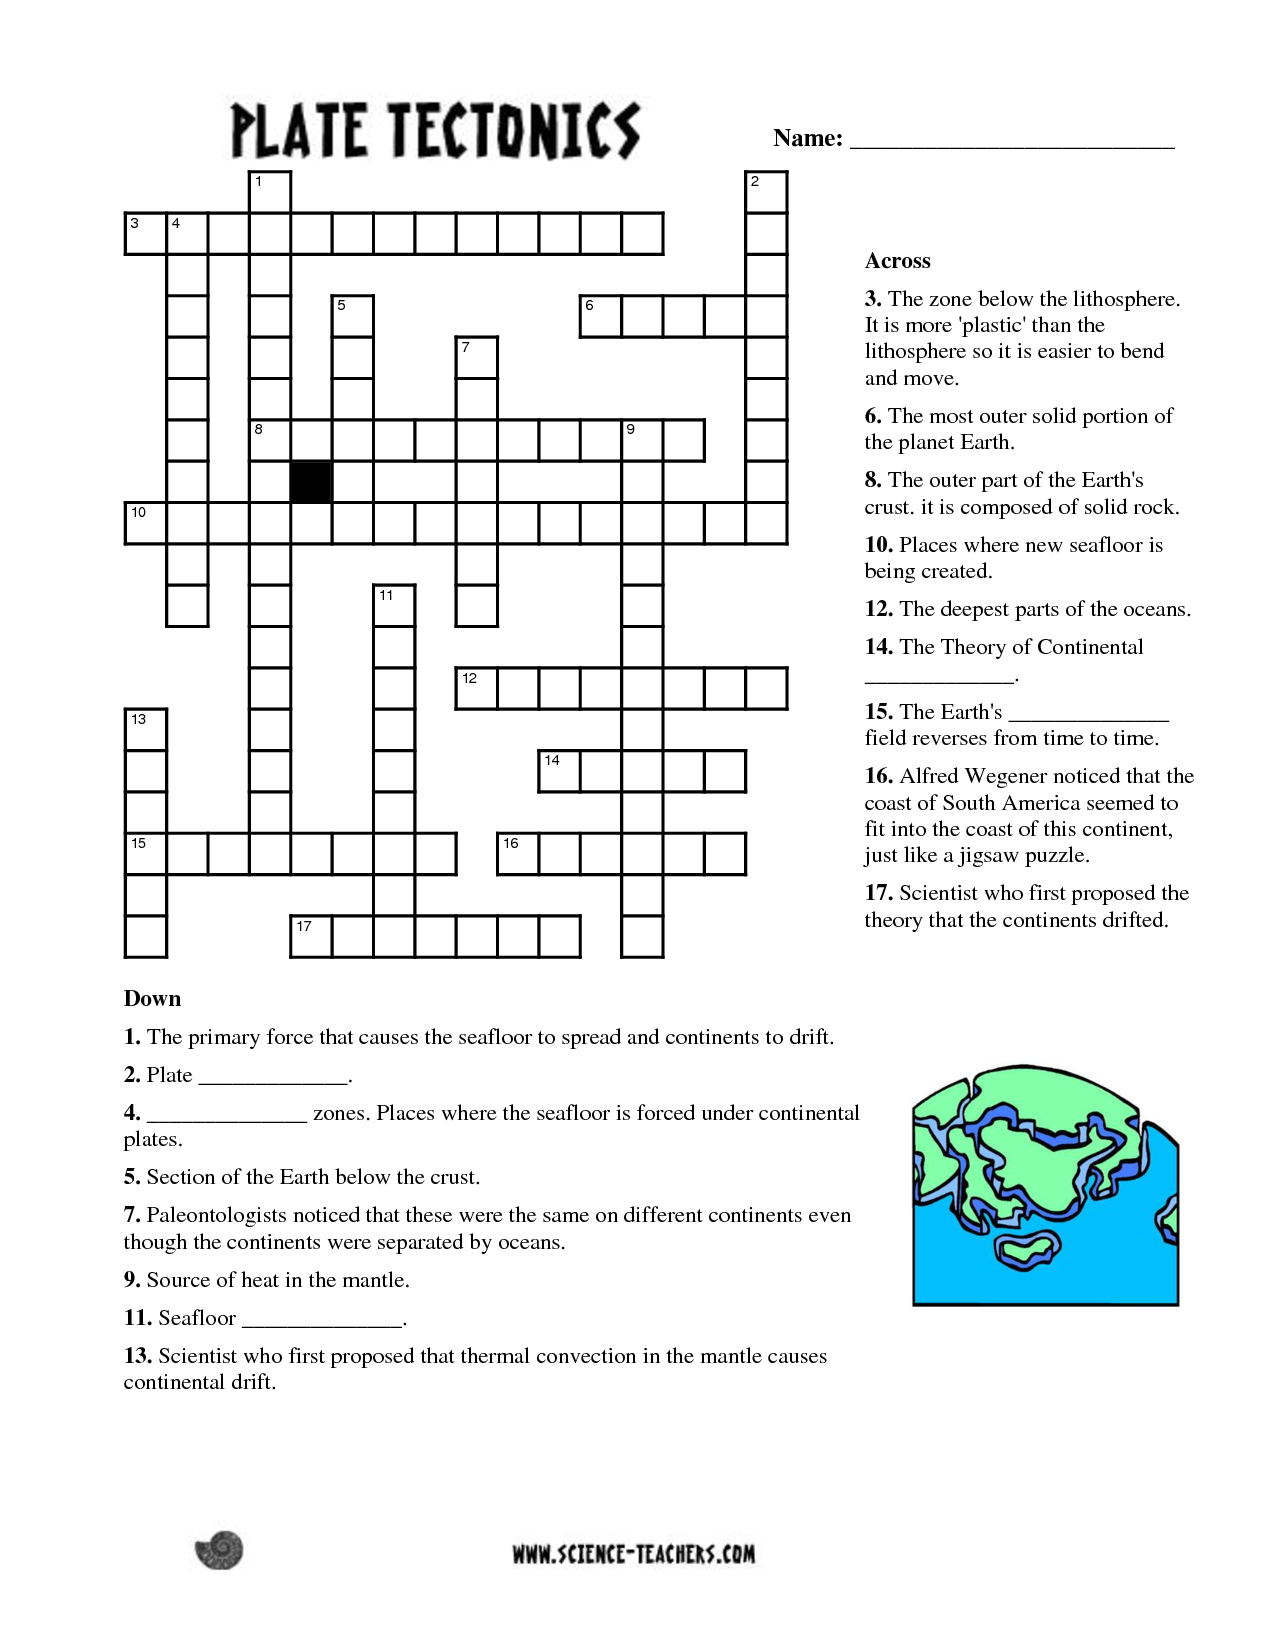 Planets Crossword Puzzle Worksheet - Pics About Space | Fun Science - Science Crossword Puzzles Printable With Answers